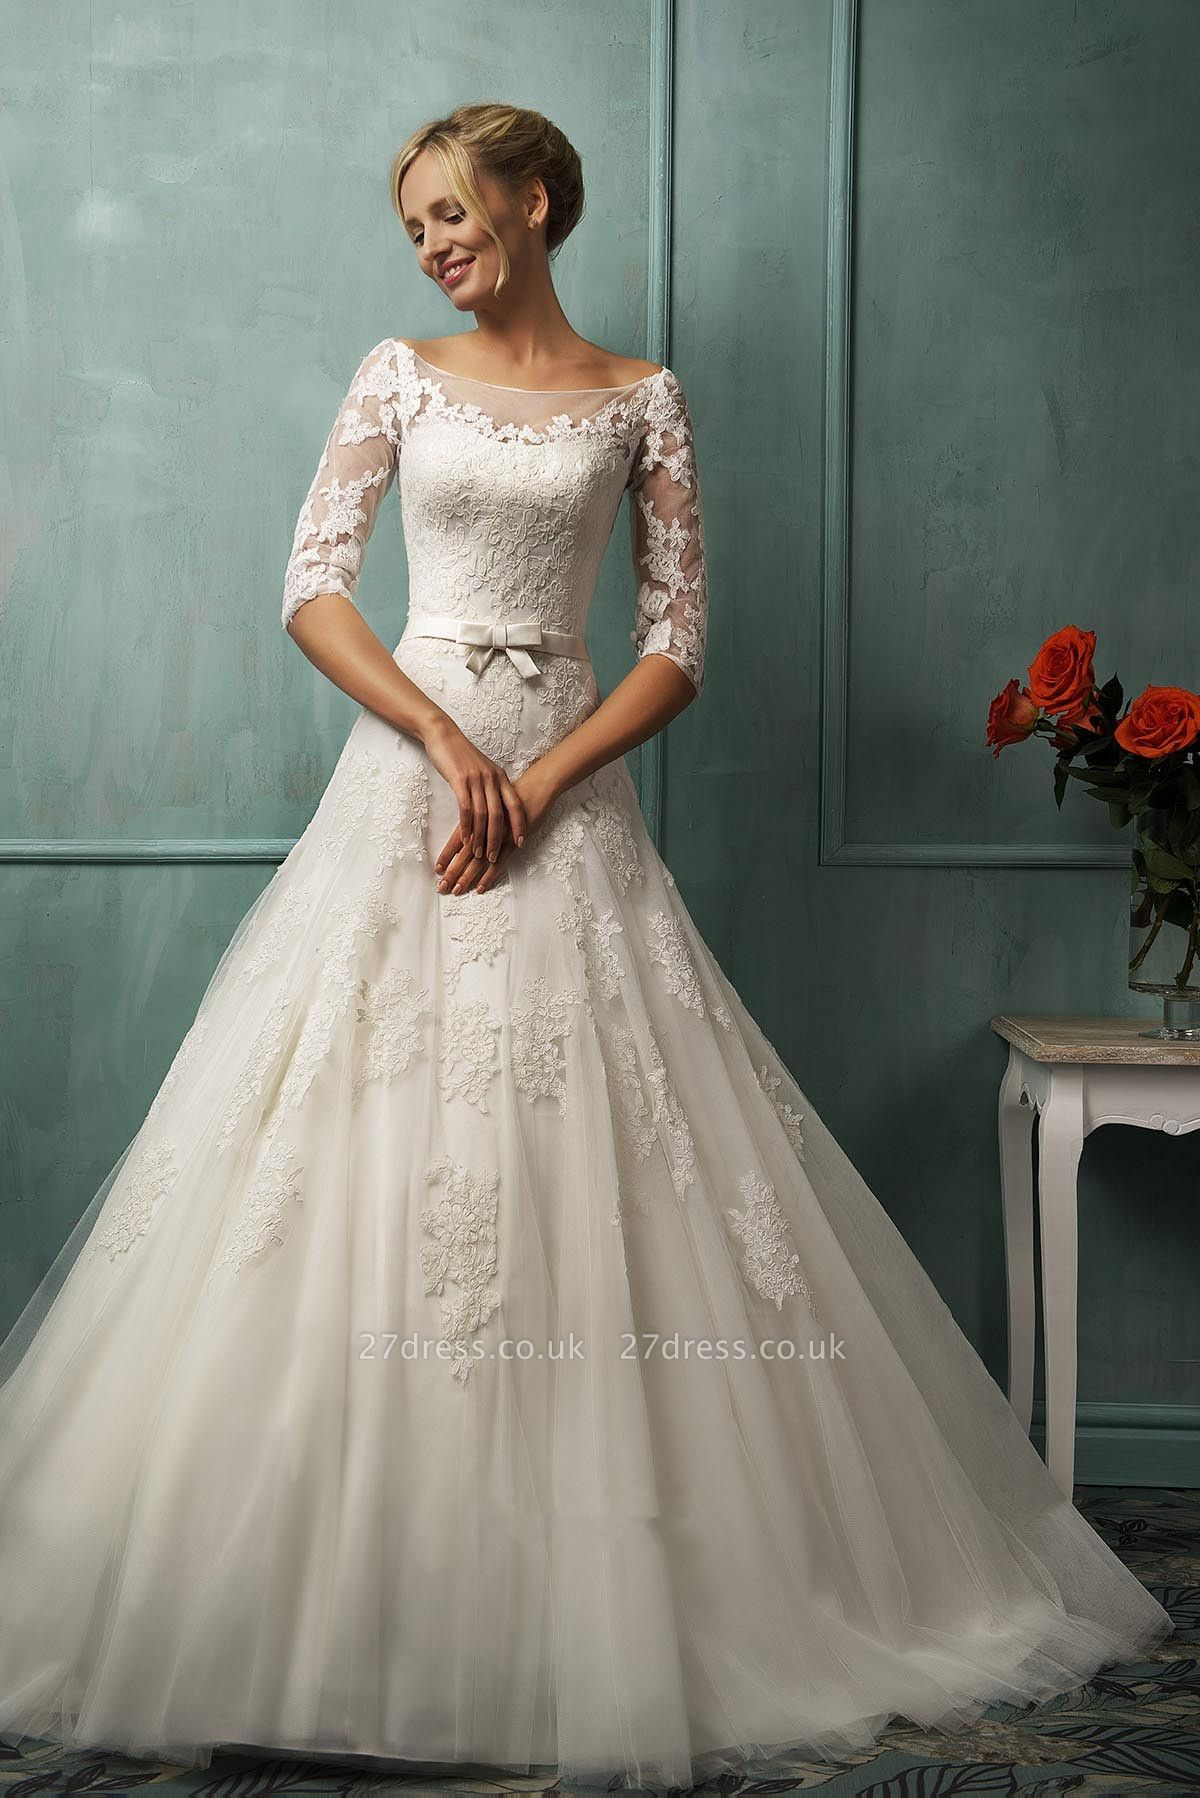 Modern Half-sleeve Tulle Lace Appliques Princess Wedding Dress With Bowknot